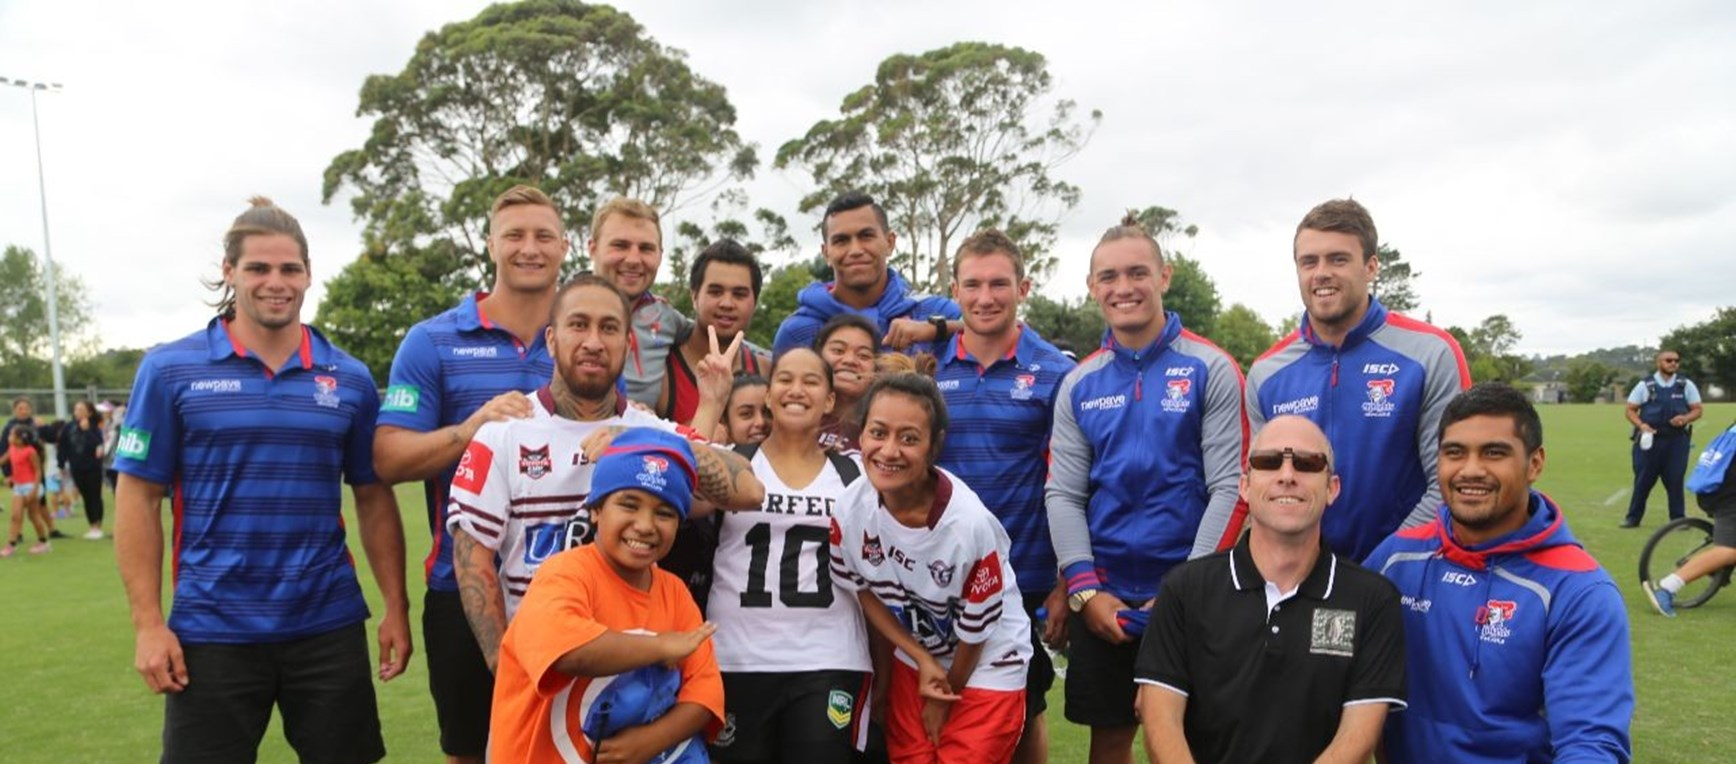 Gallery: Knights' NZ junior club visit